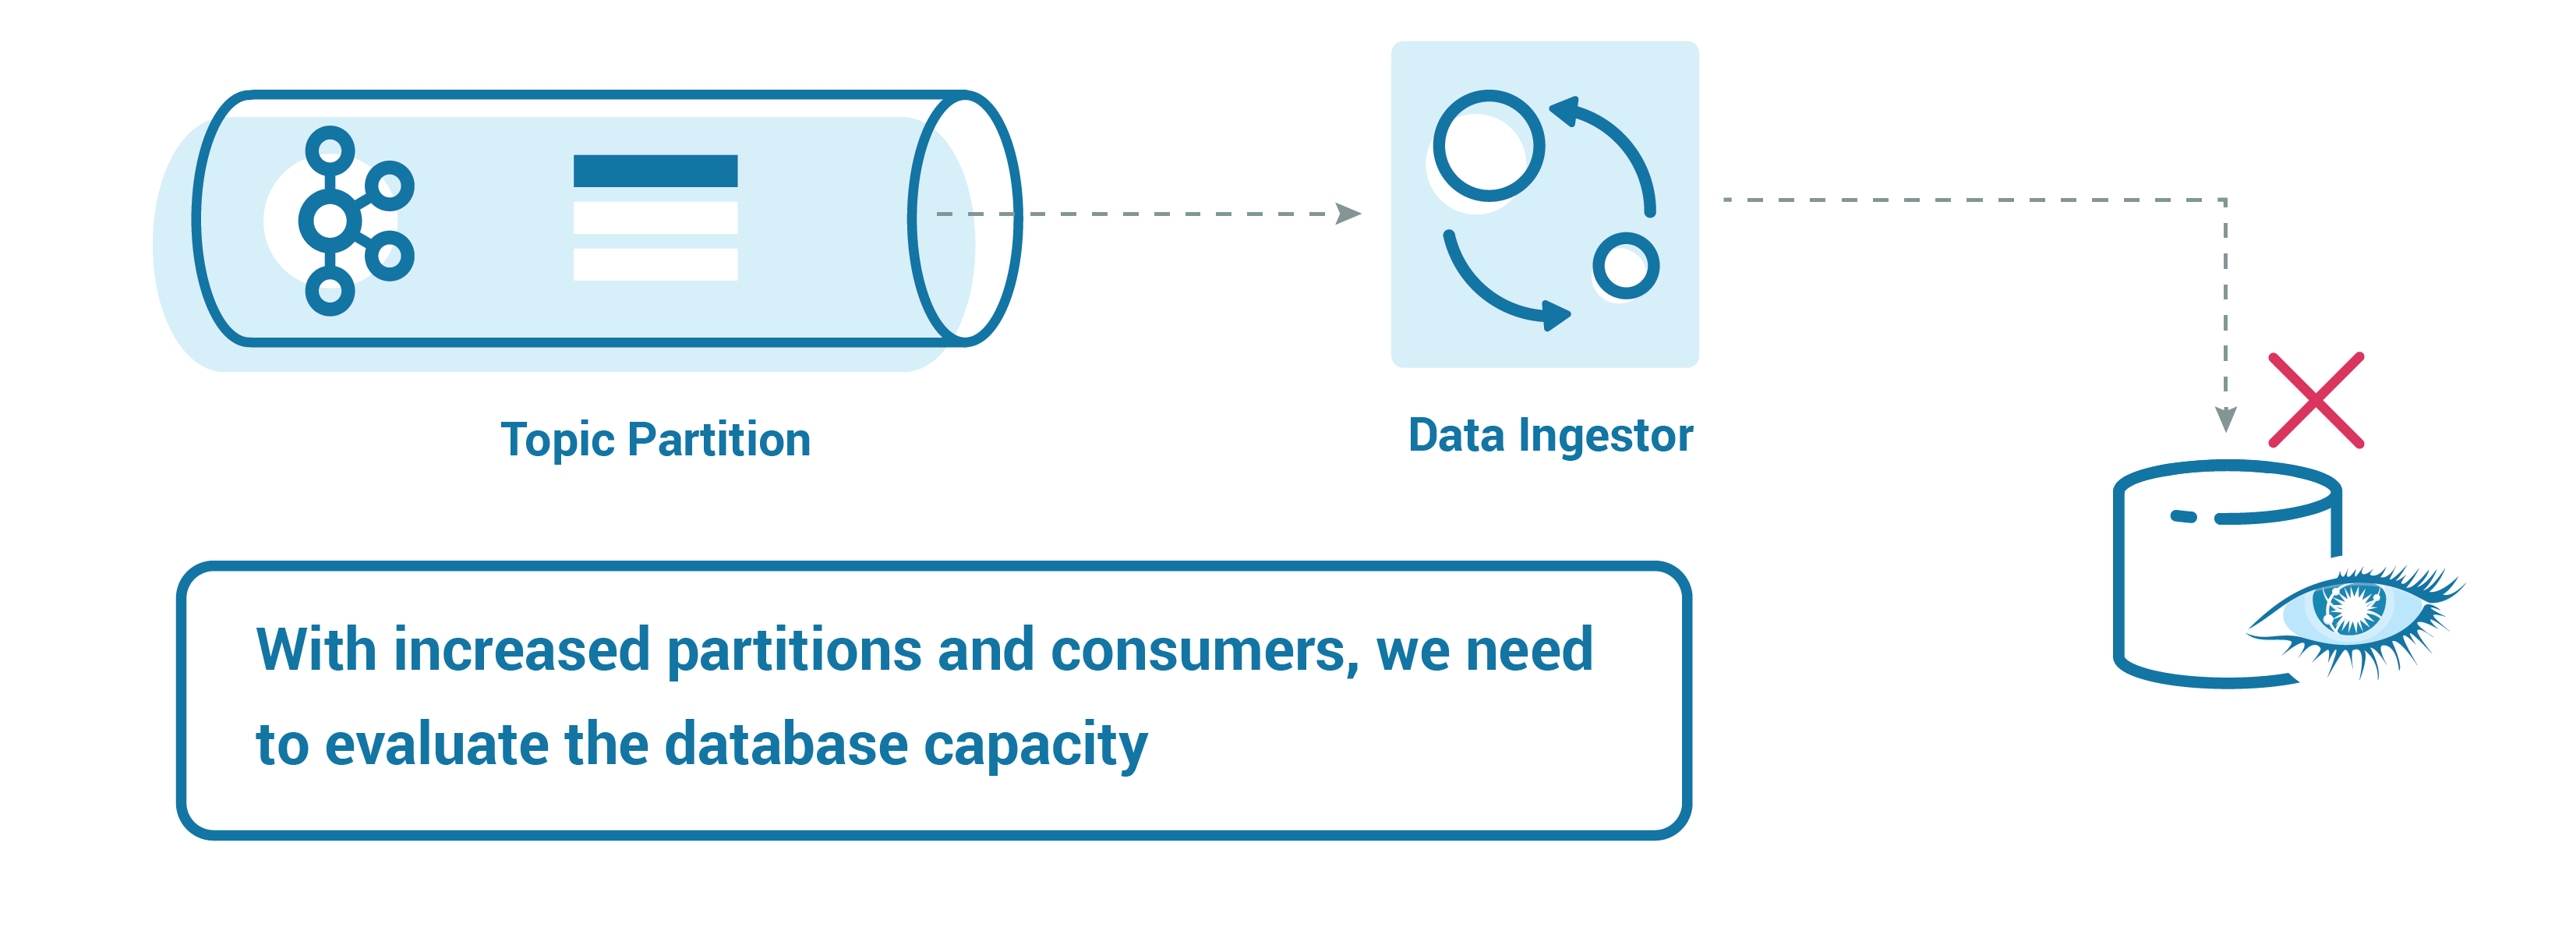 With increased partitions and consumers, we need to evaluate the database capacity